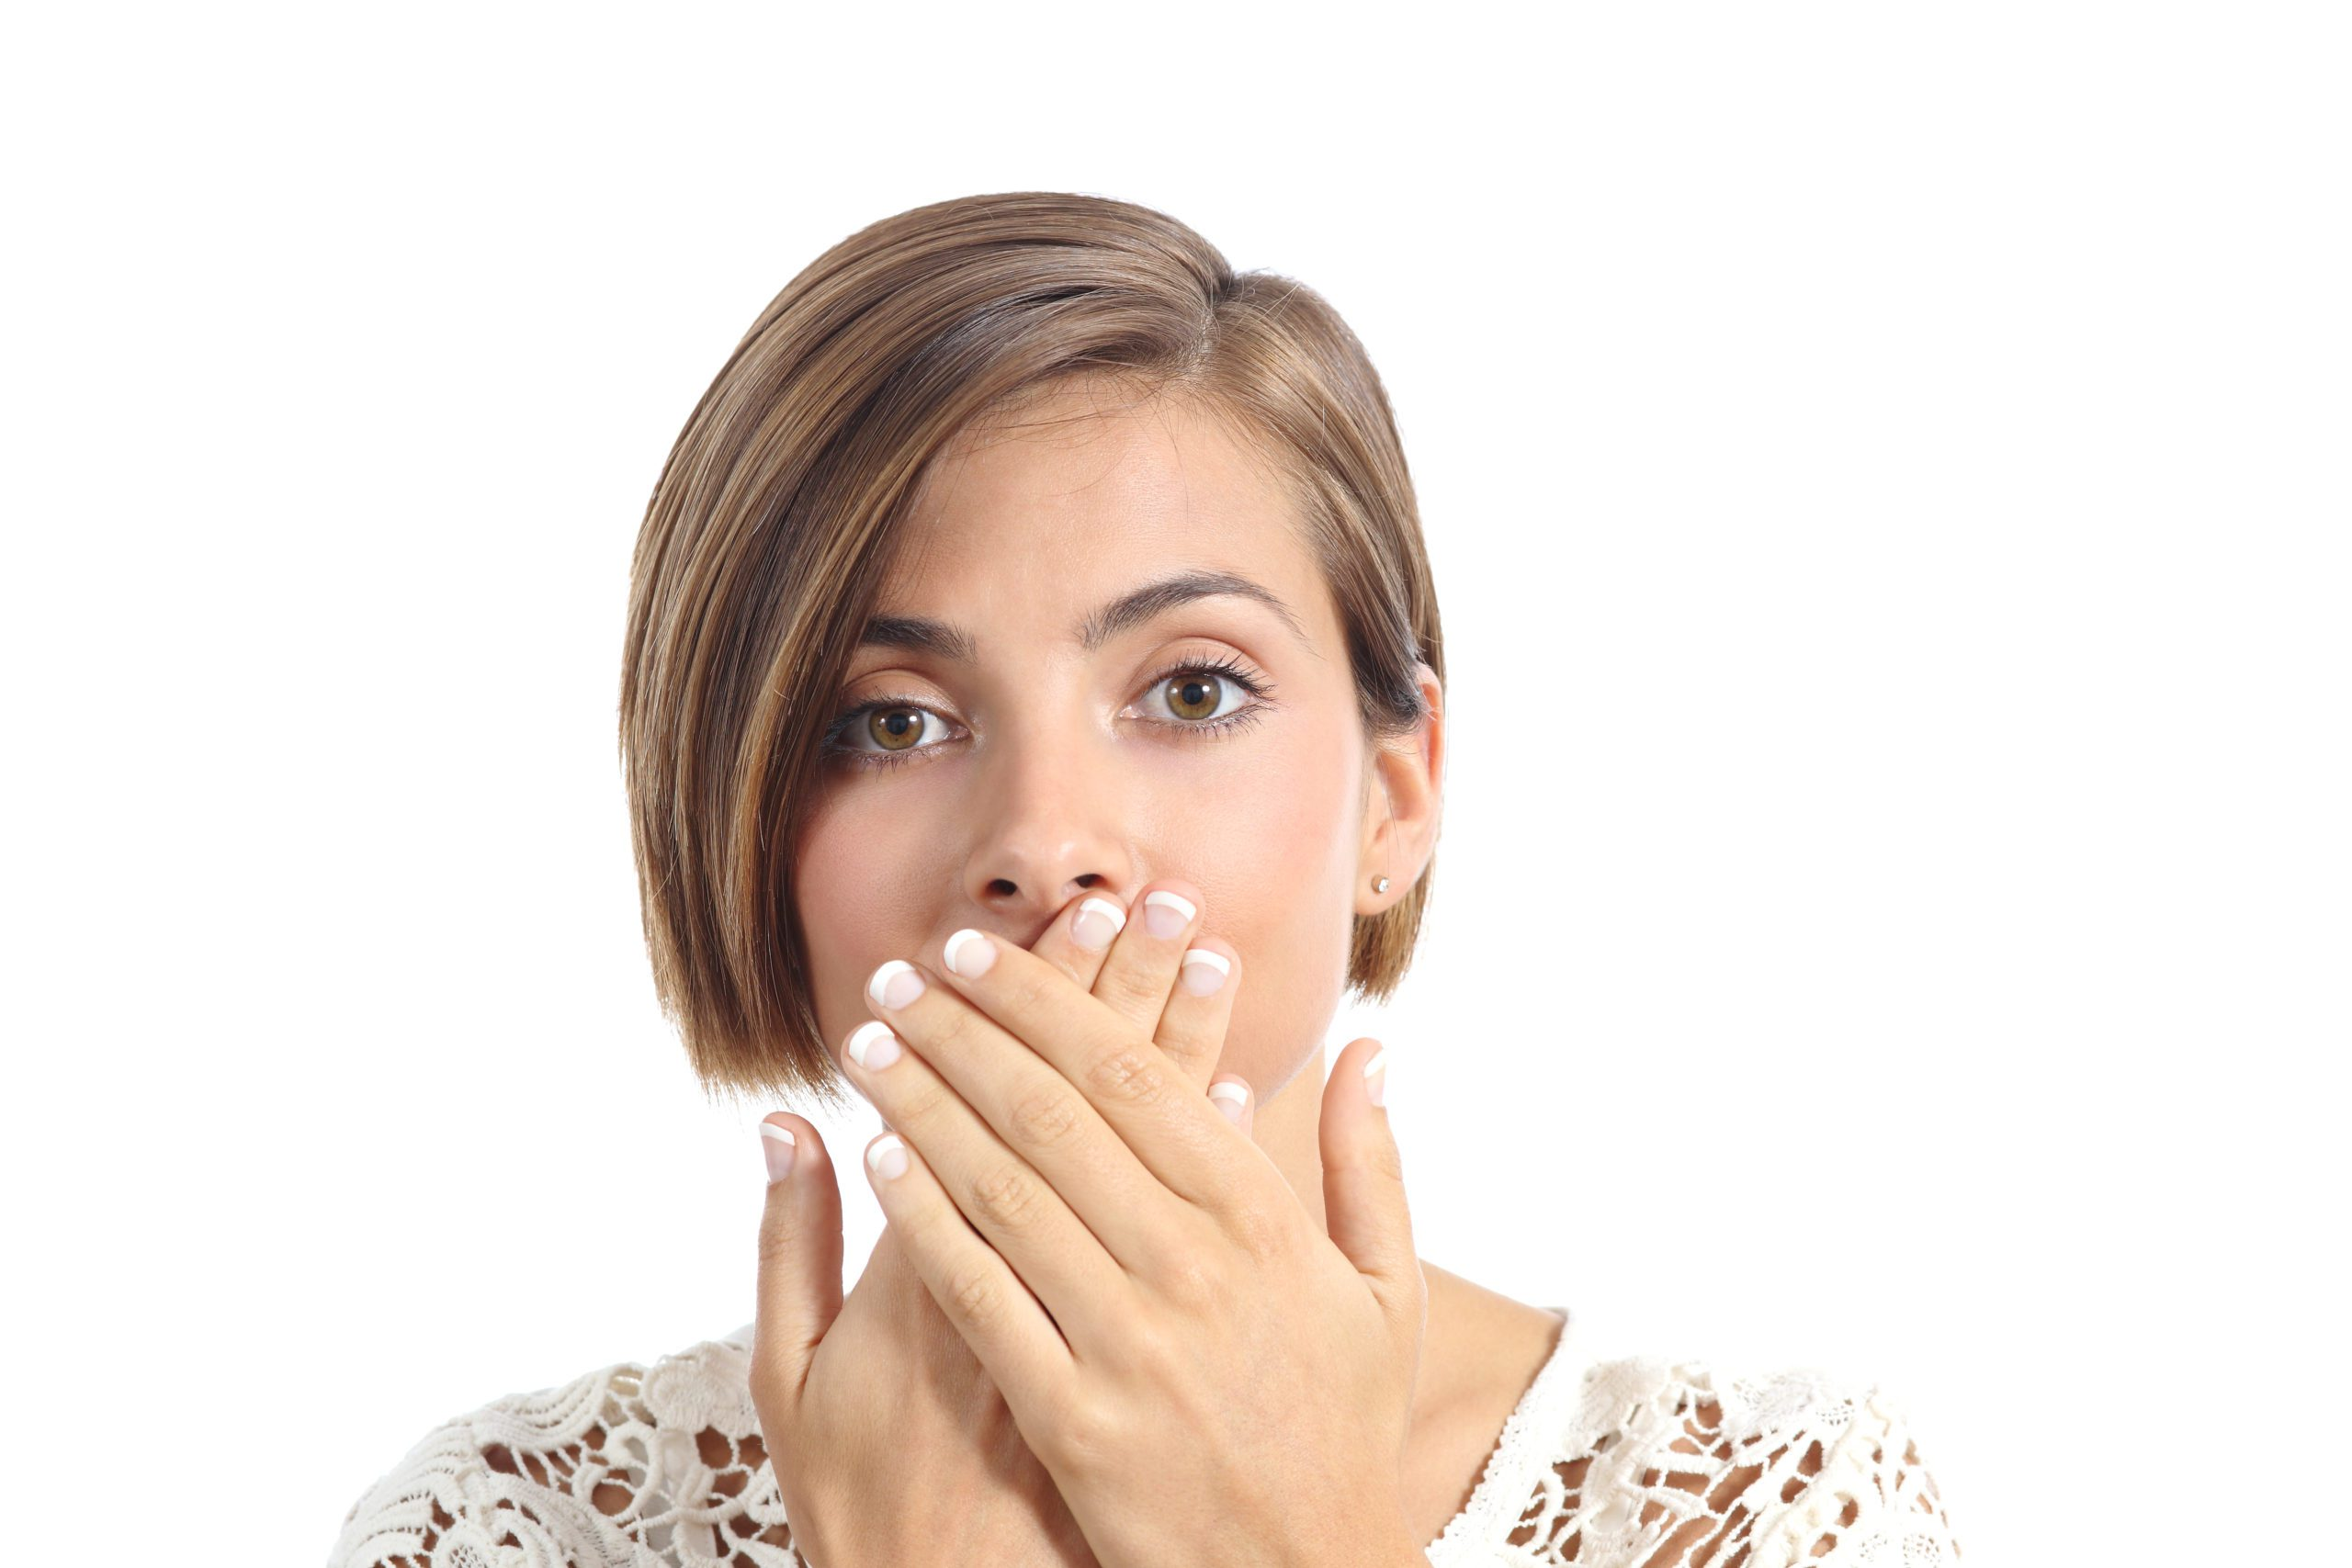 woman covering her mouth because of a cold sore